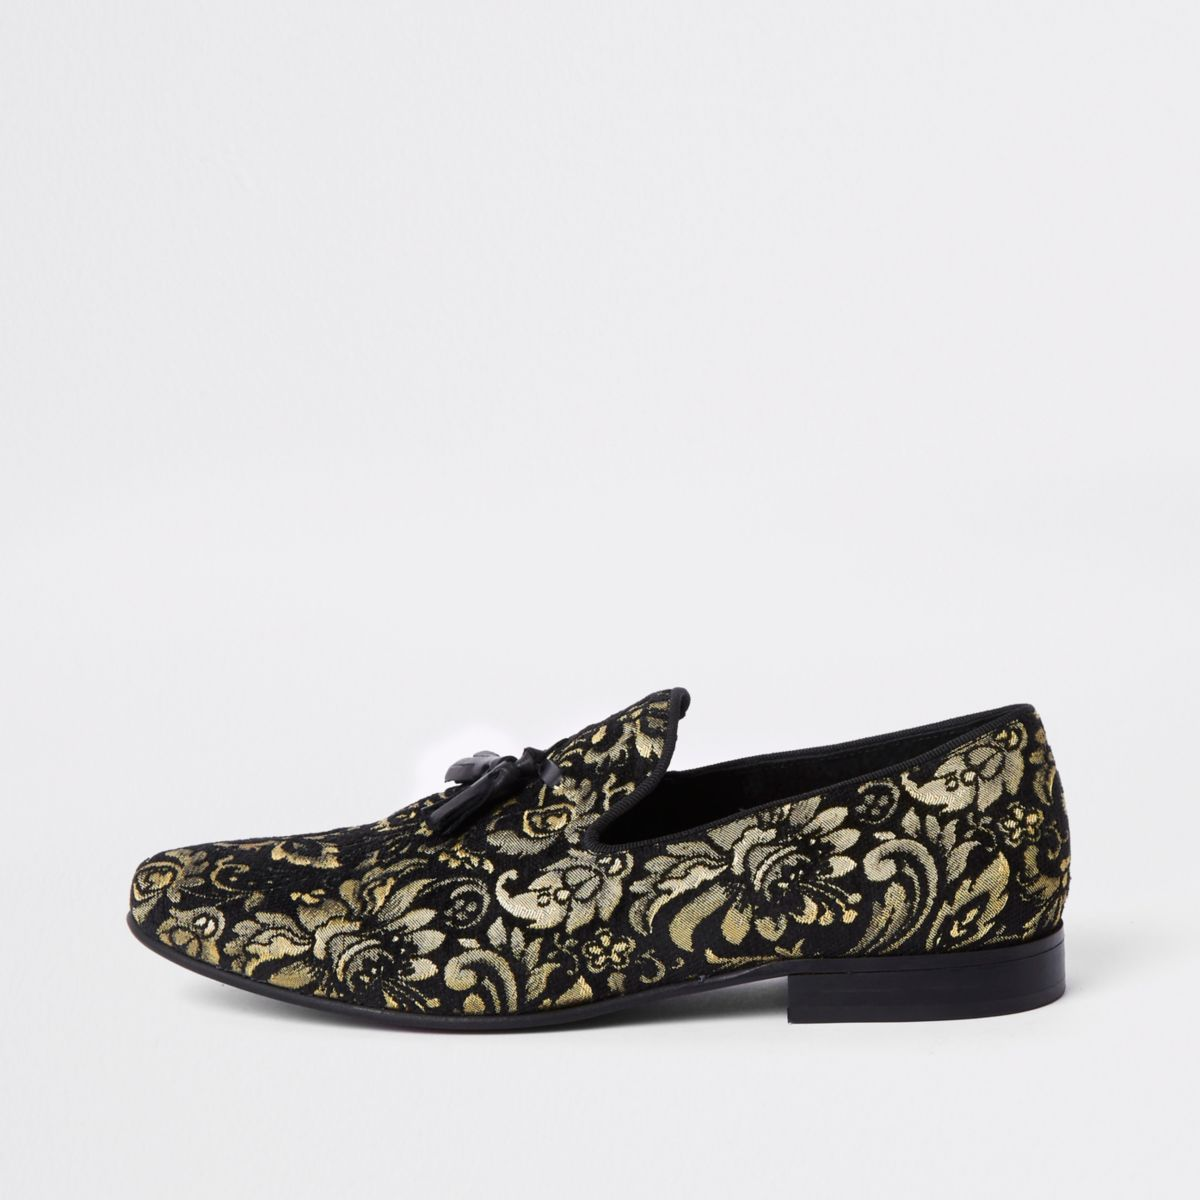 Black Gold Tone Embroidered Loafer by River Island